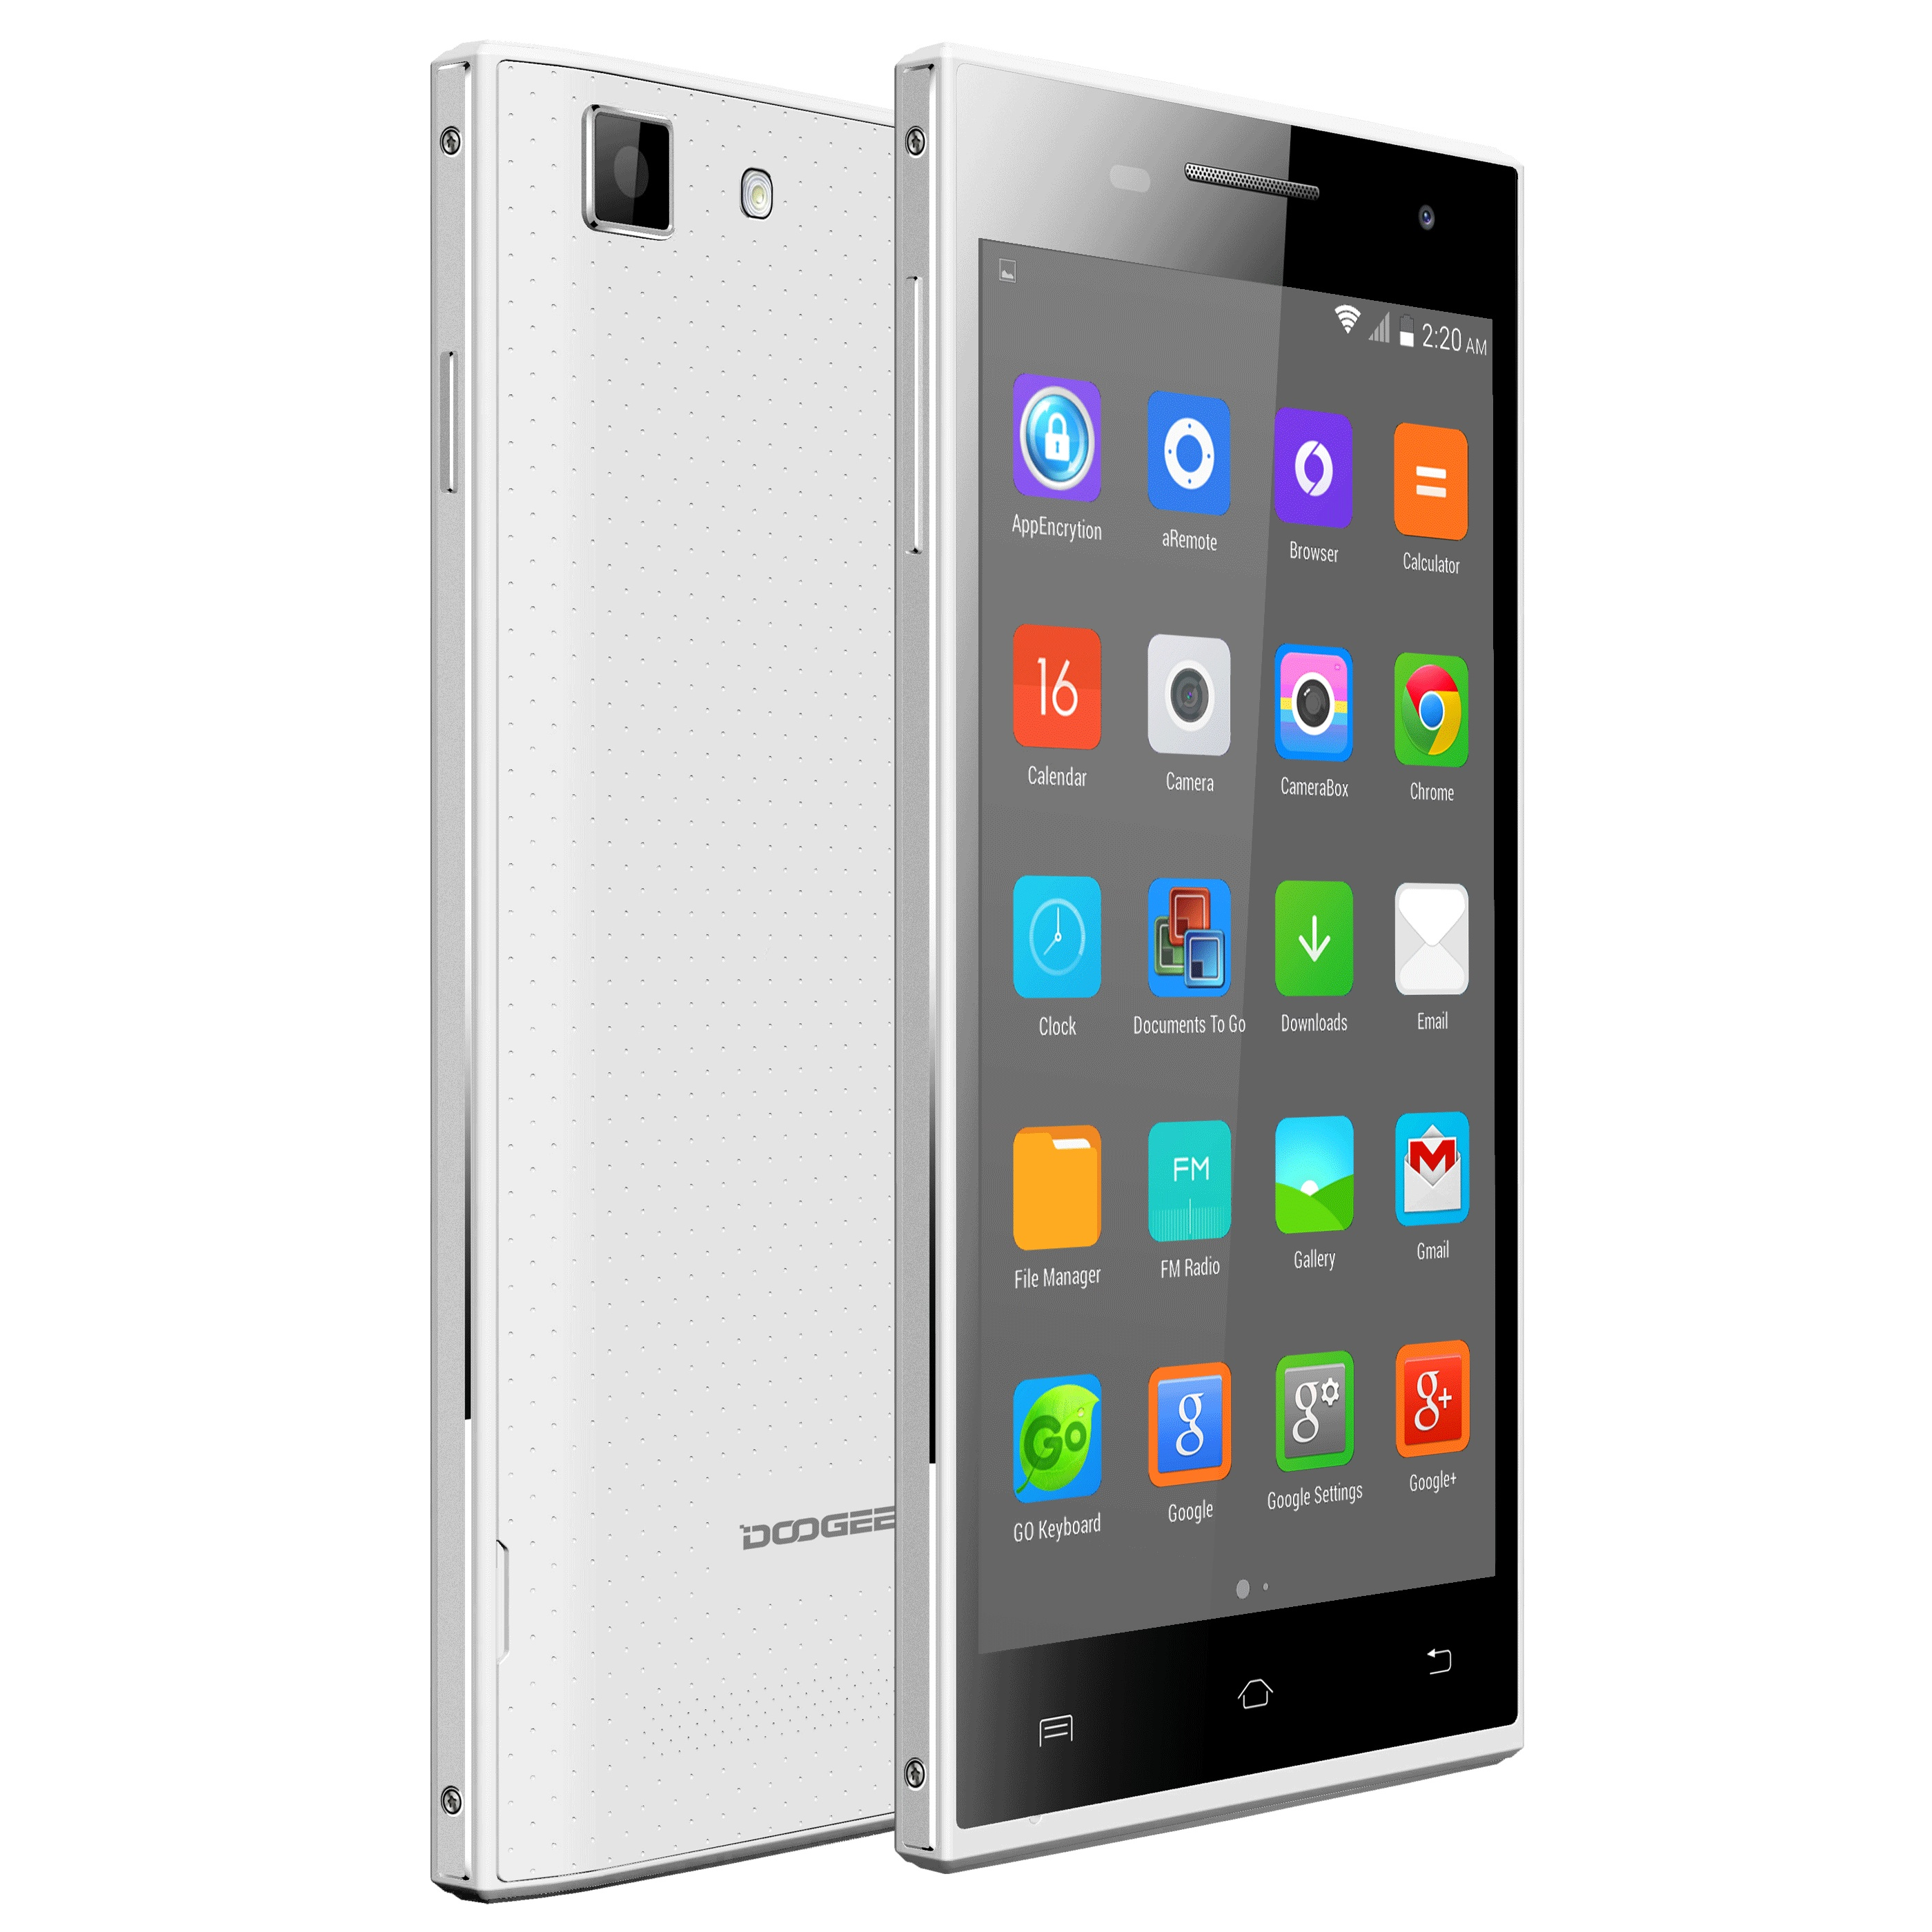 "DOOGEE Turbo Mini F1 4G Smartphone 64bit MTK6732 Quad Core 1GB 8GB 4.5"" QHD White"